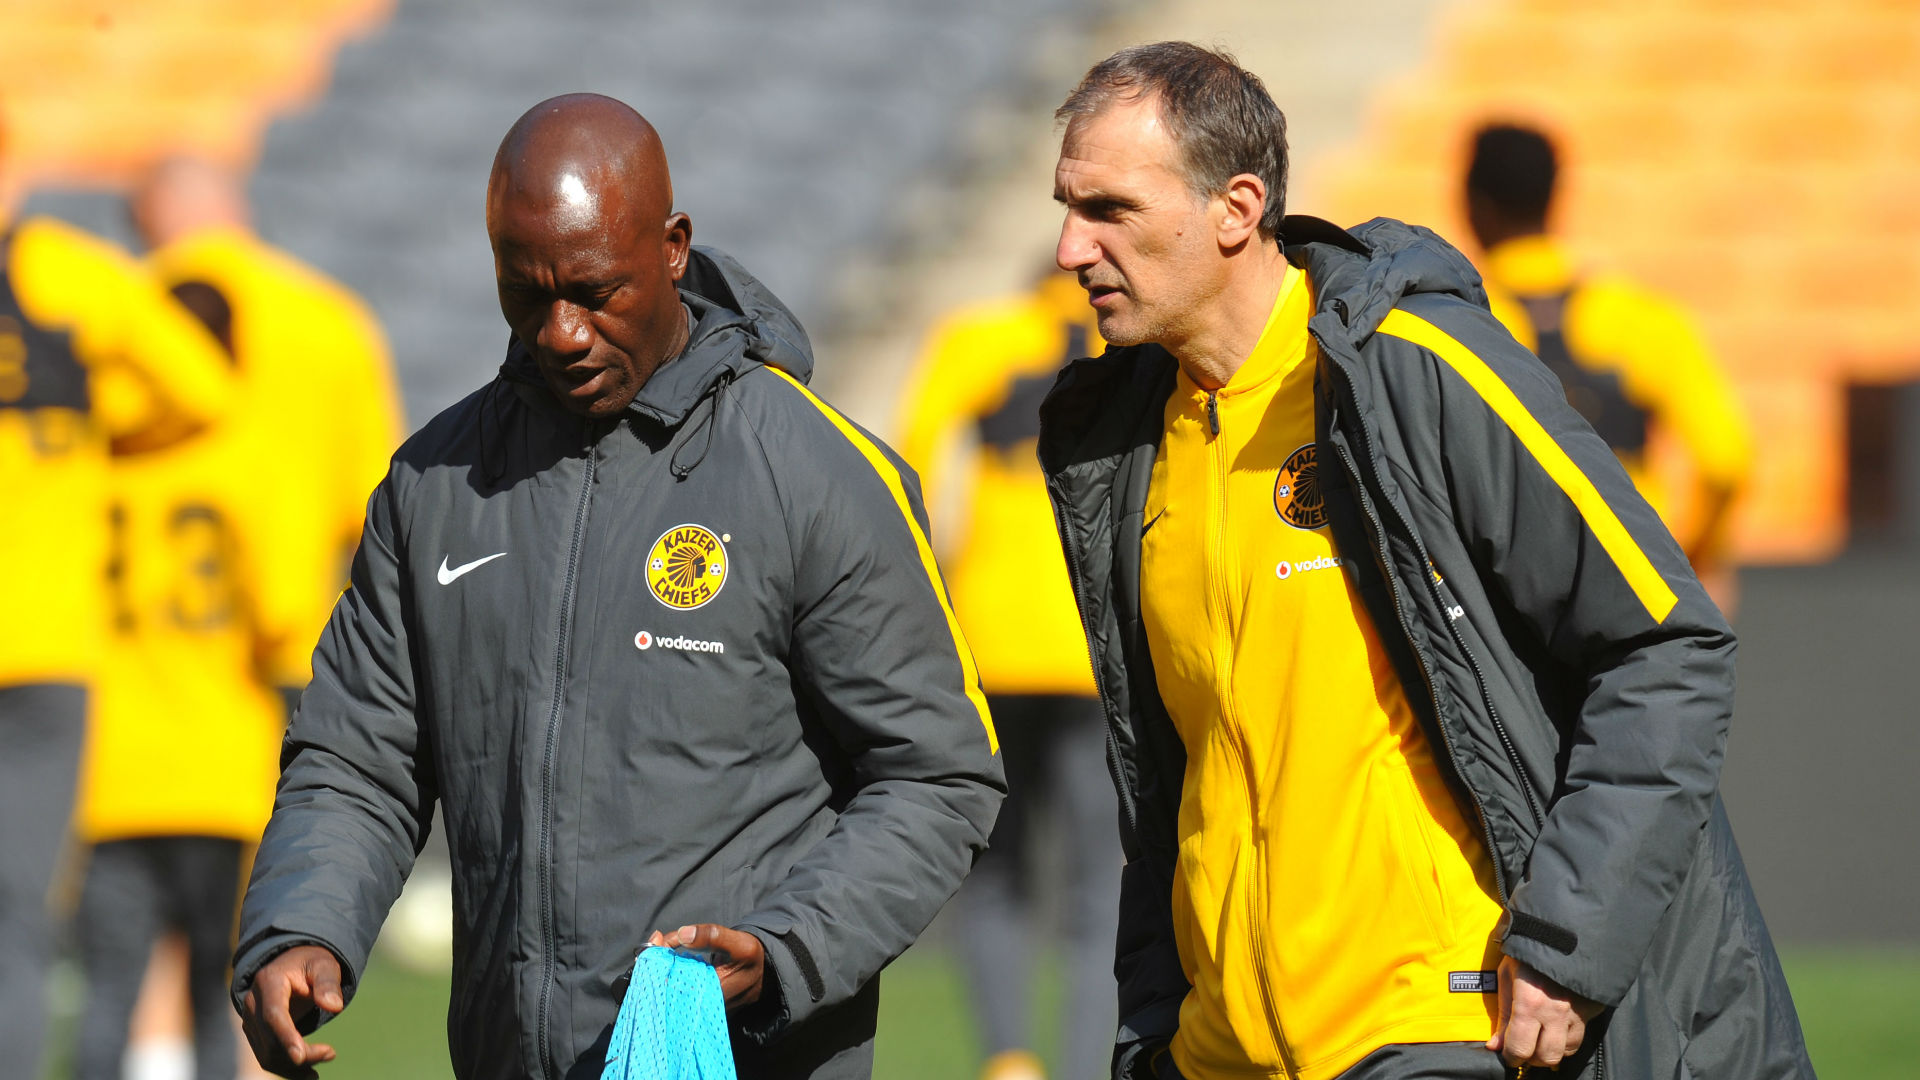 Siphiwe Tshabalala: Kaizer Chiefs players need to respect and support Giovanni Solinas